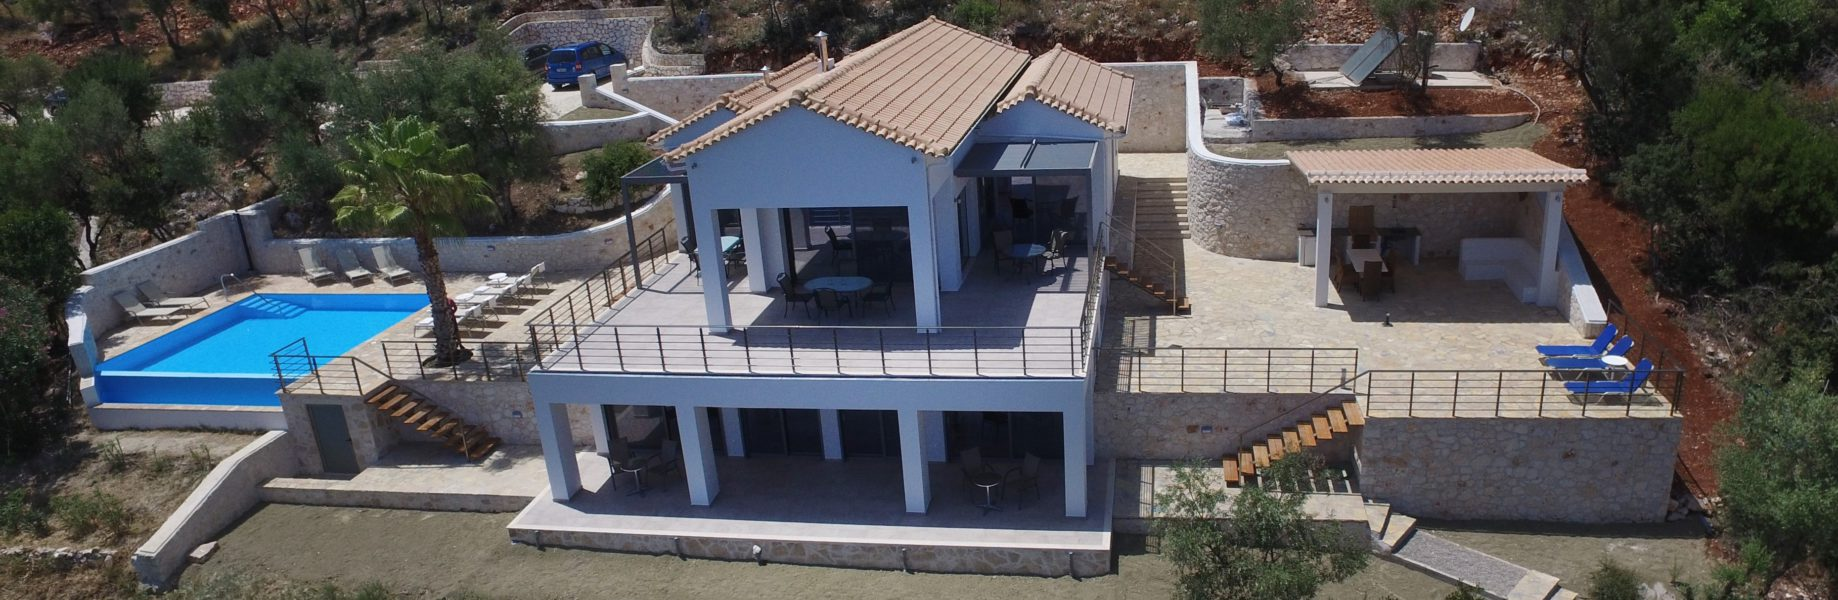 Villa Lefkas A dream holiday villa for rent